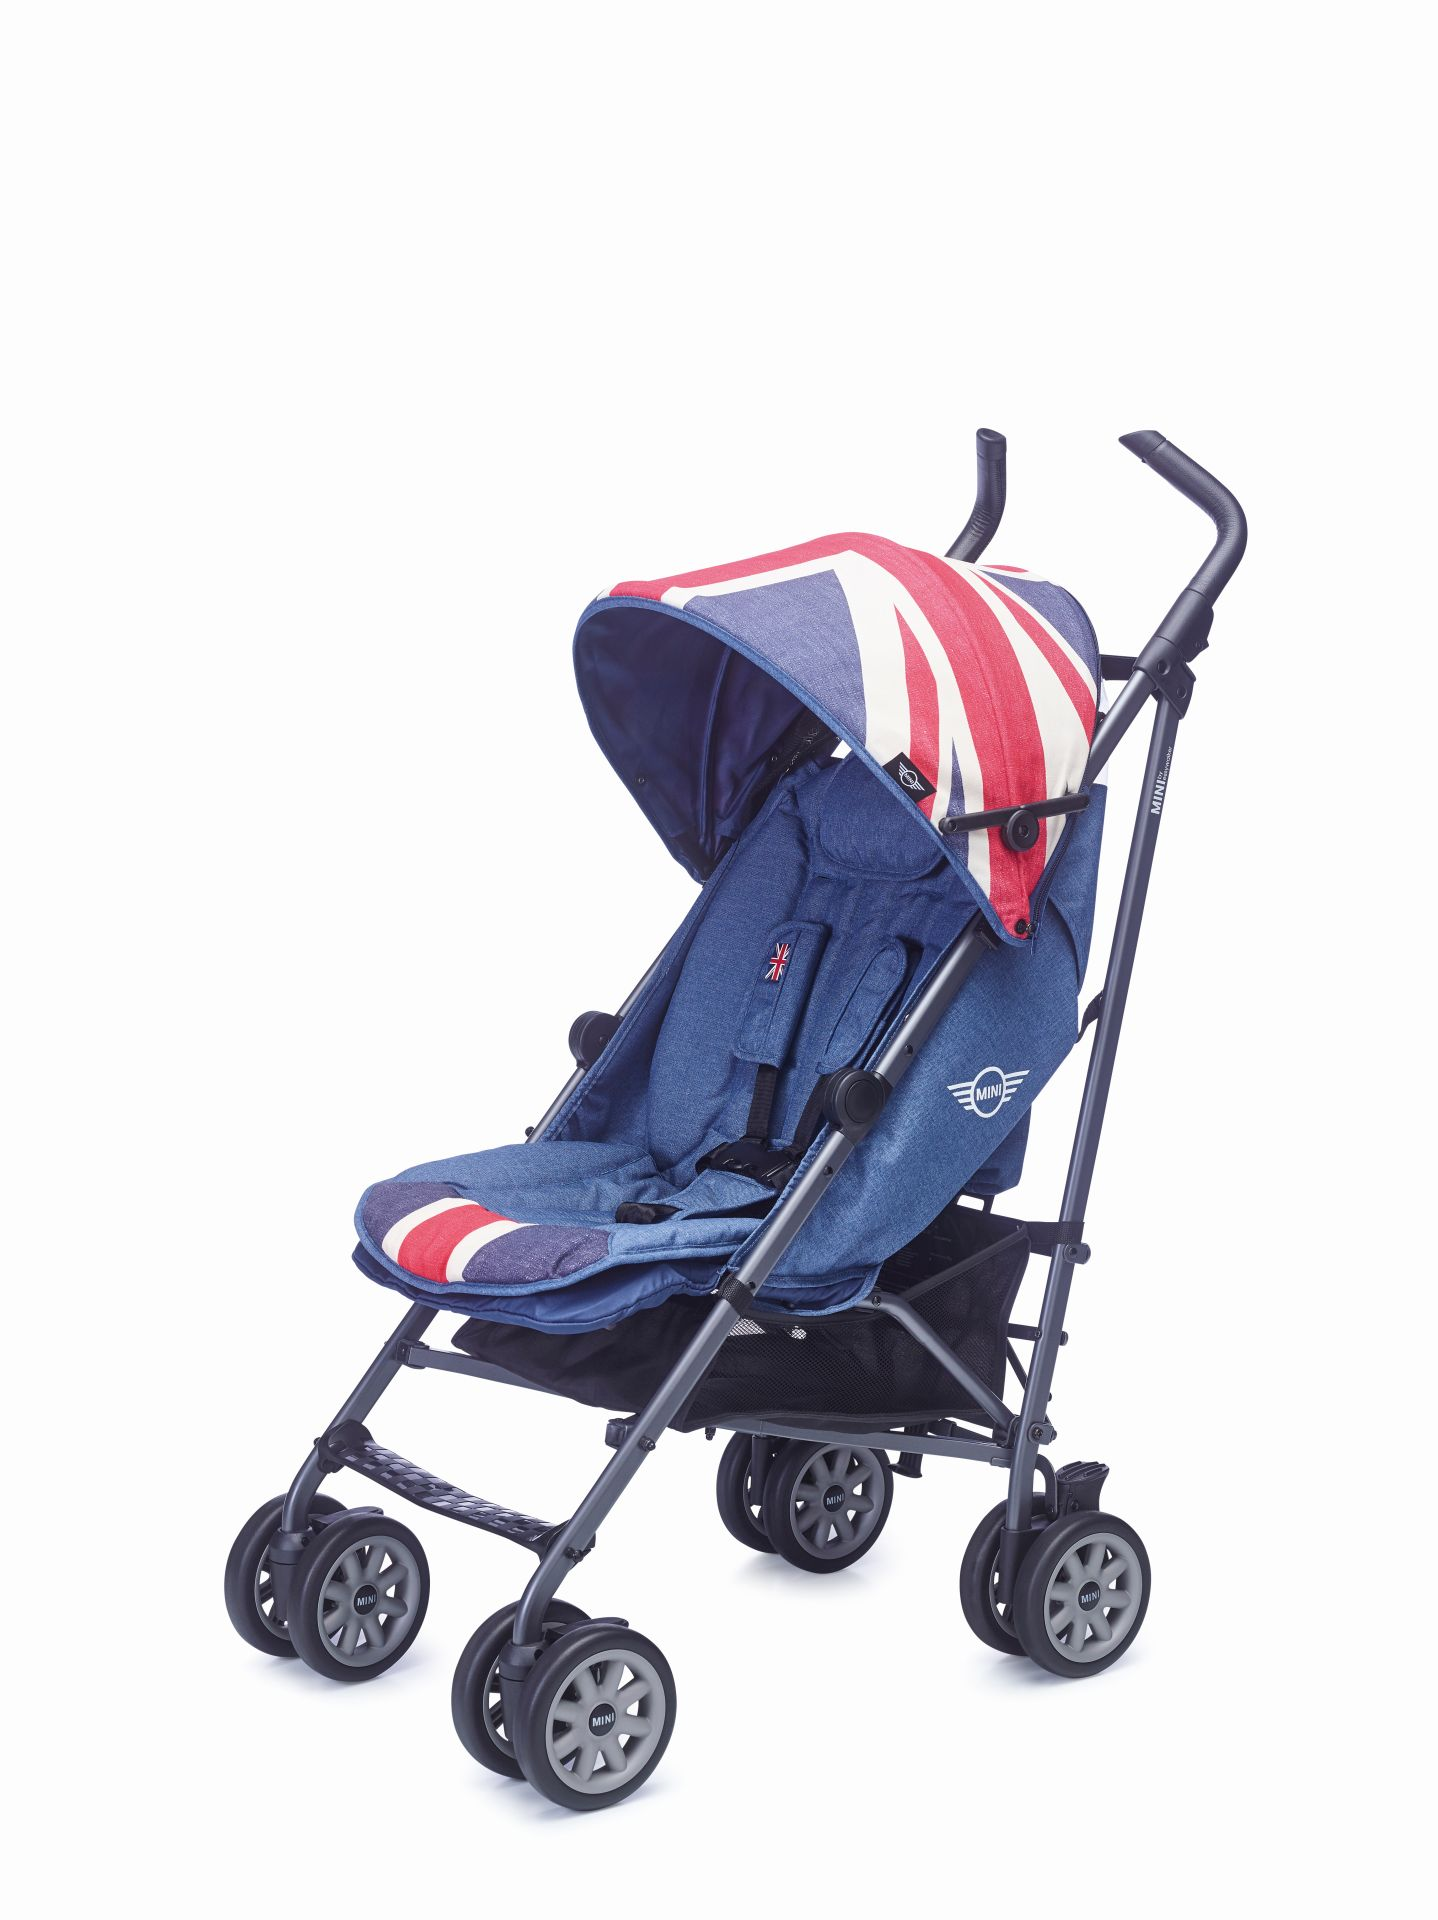 mini by easywalker buggy 2017 union jack vintage online. Black Bedroom Furniture Sets. Home Design Ideas